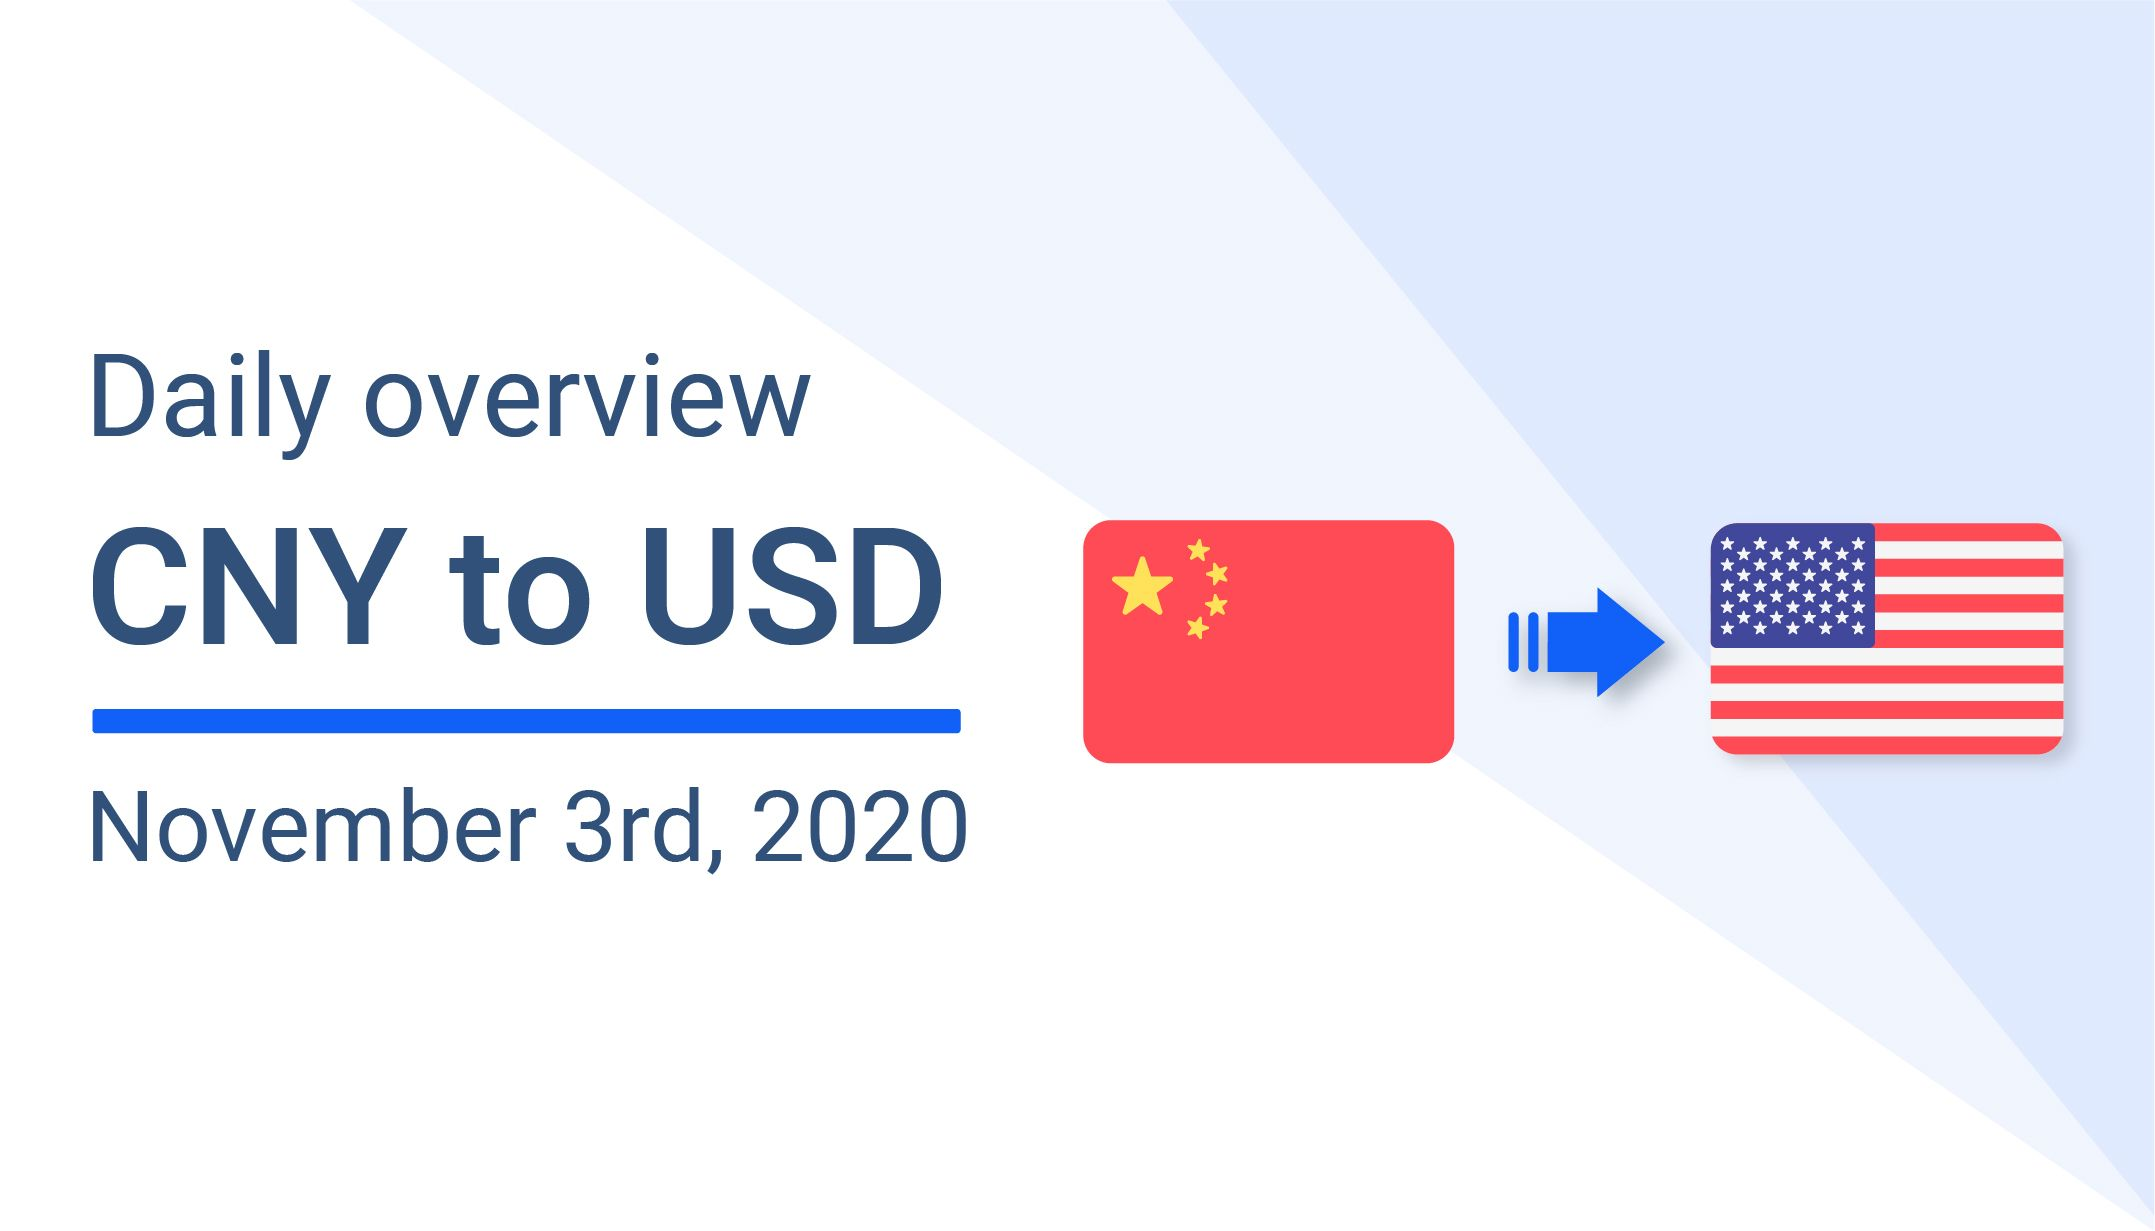 US Dollar (USD) to Chinese Yuan (CNY) Daily Overview: November 3rd